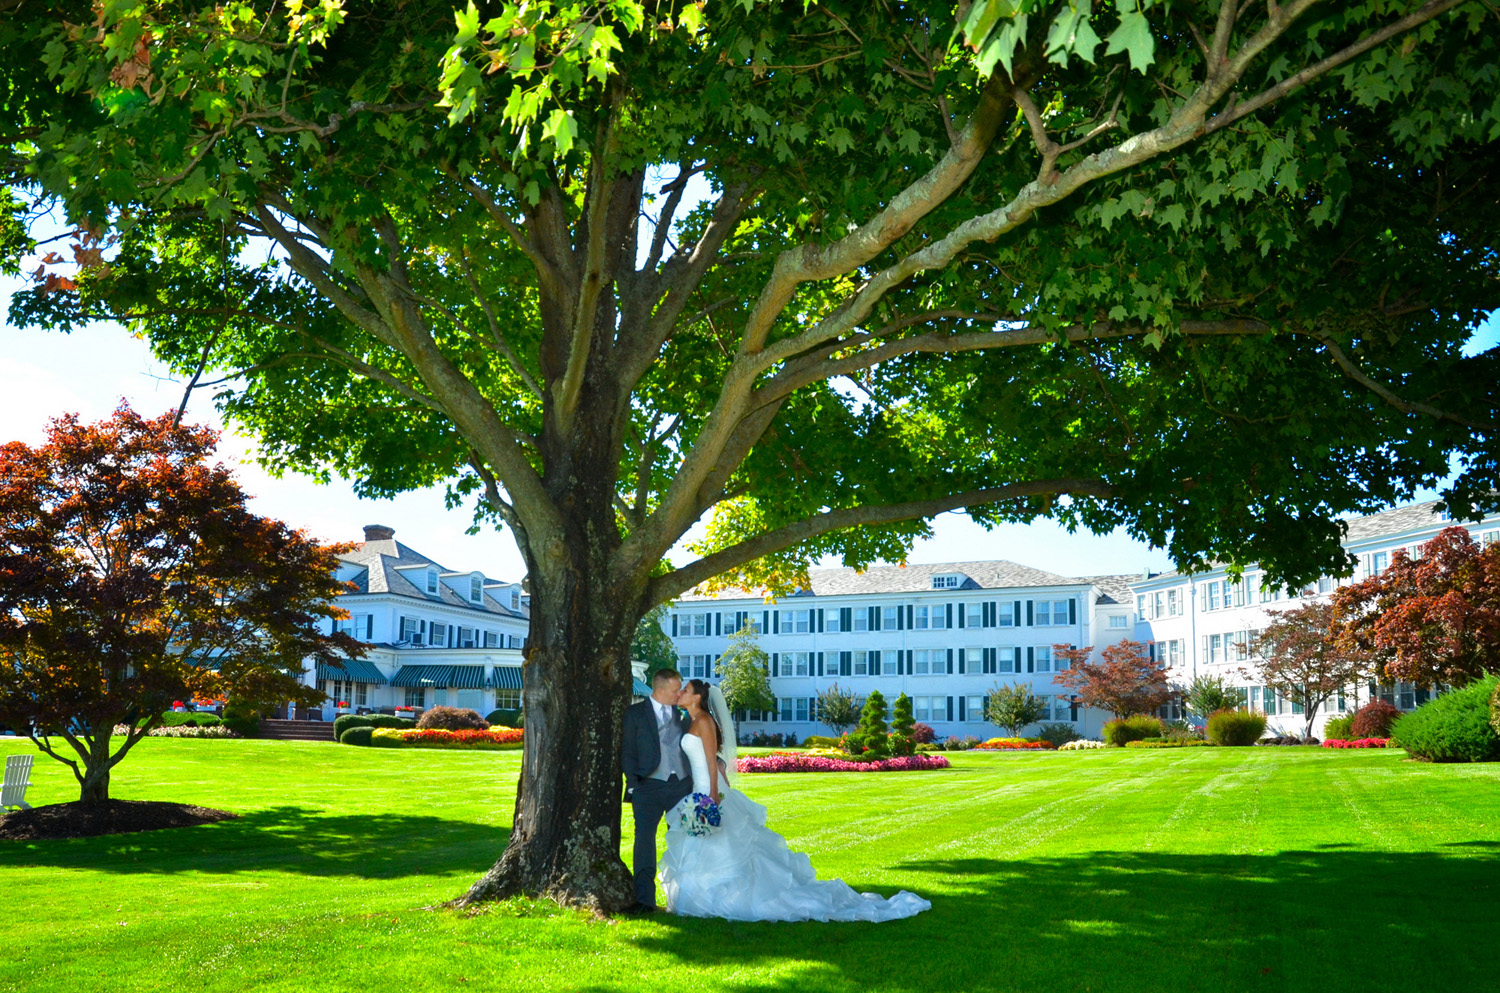 Seaview resort front lawn / Meyer Photography